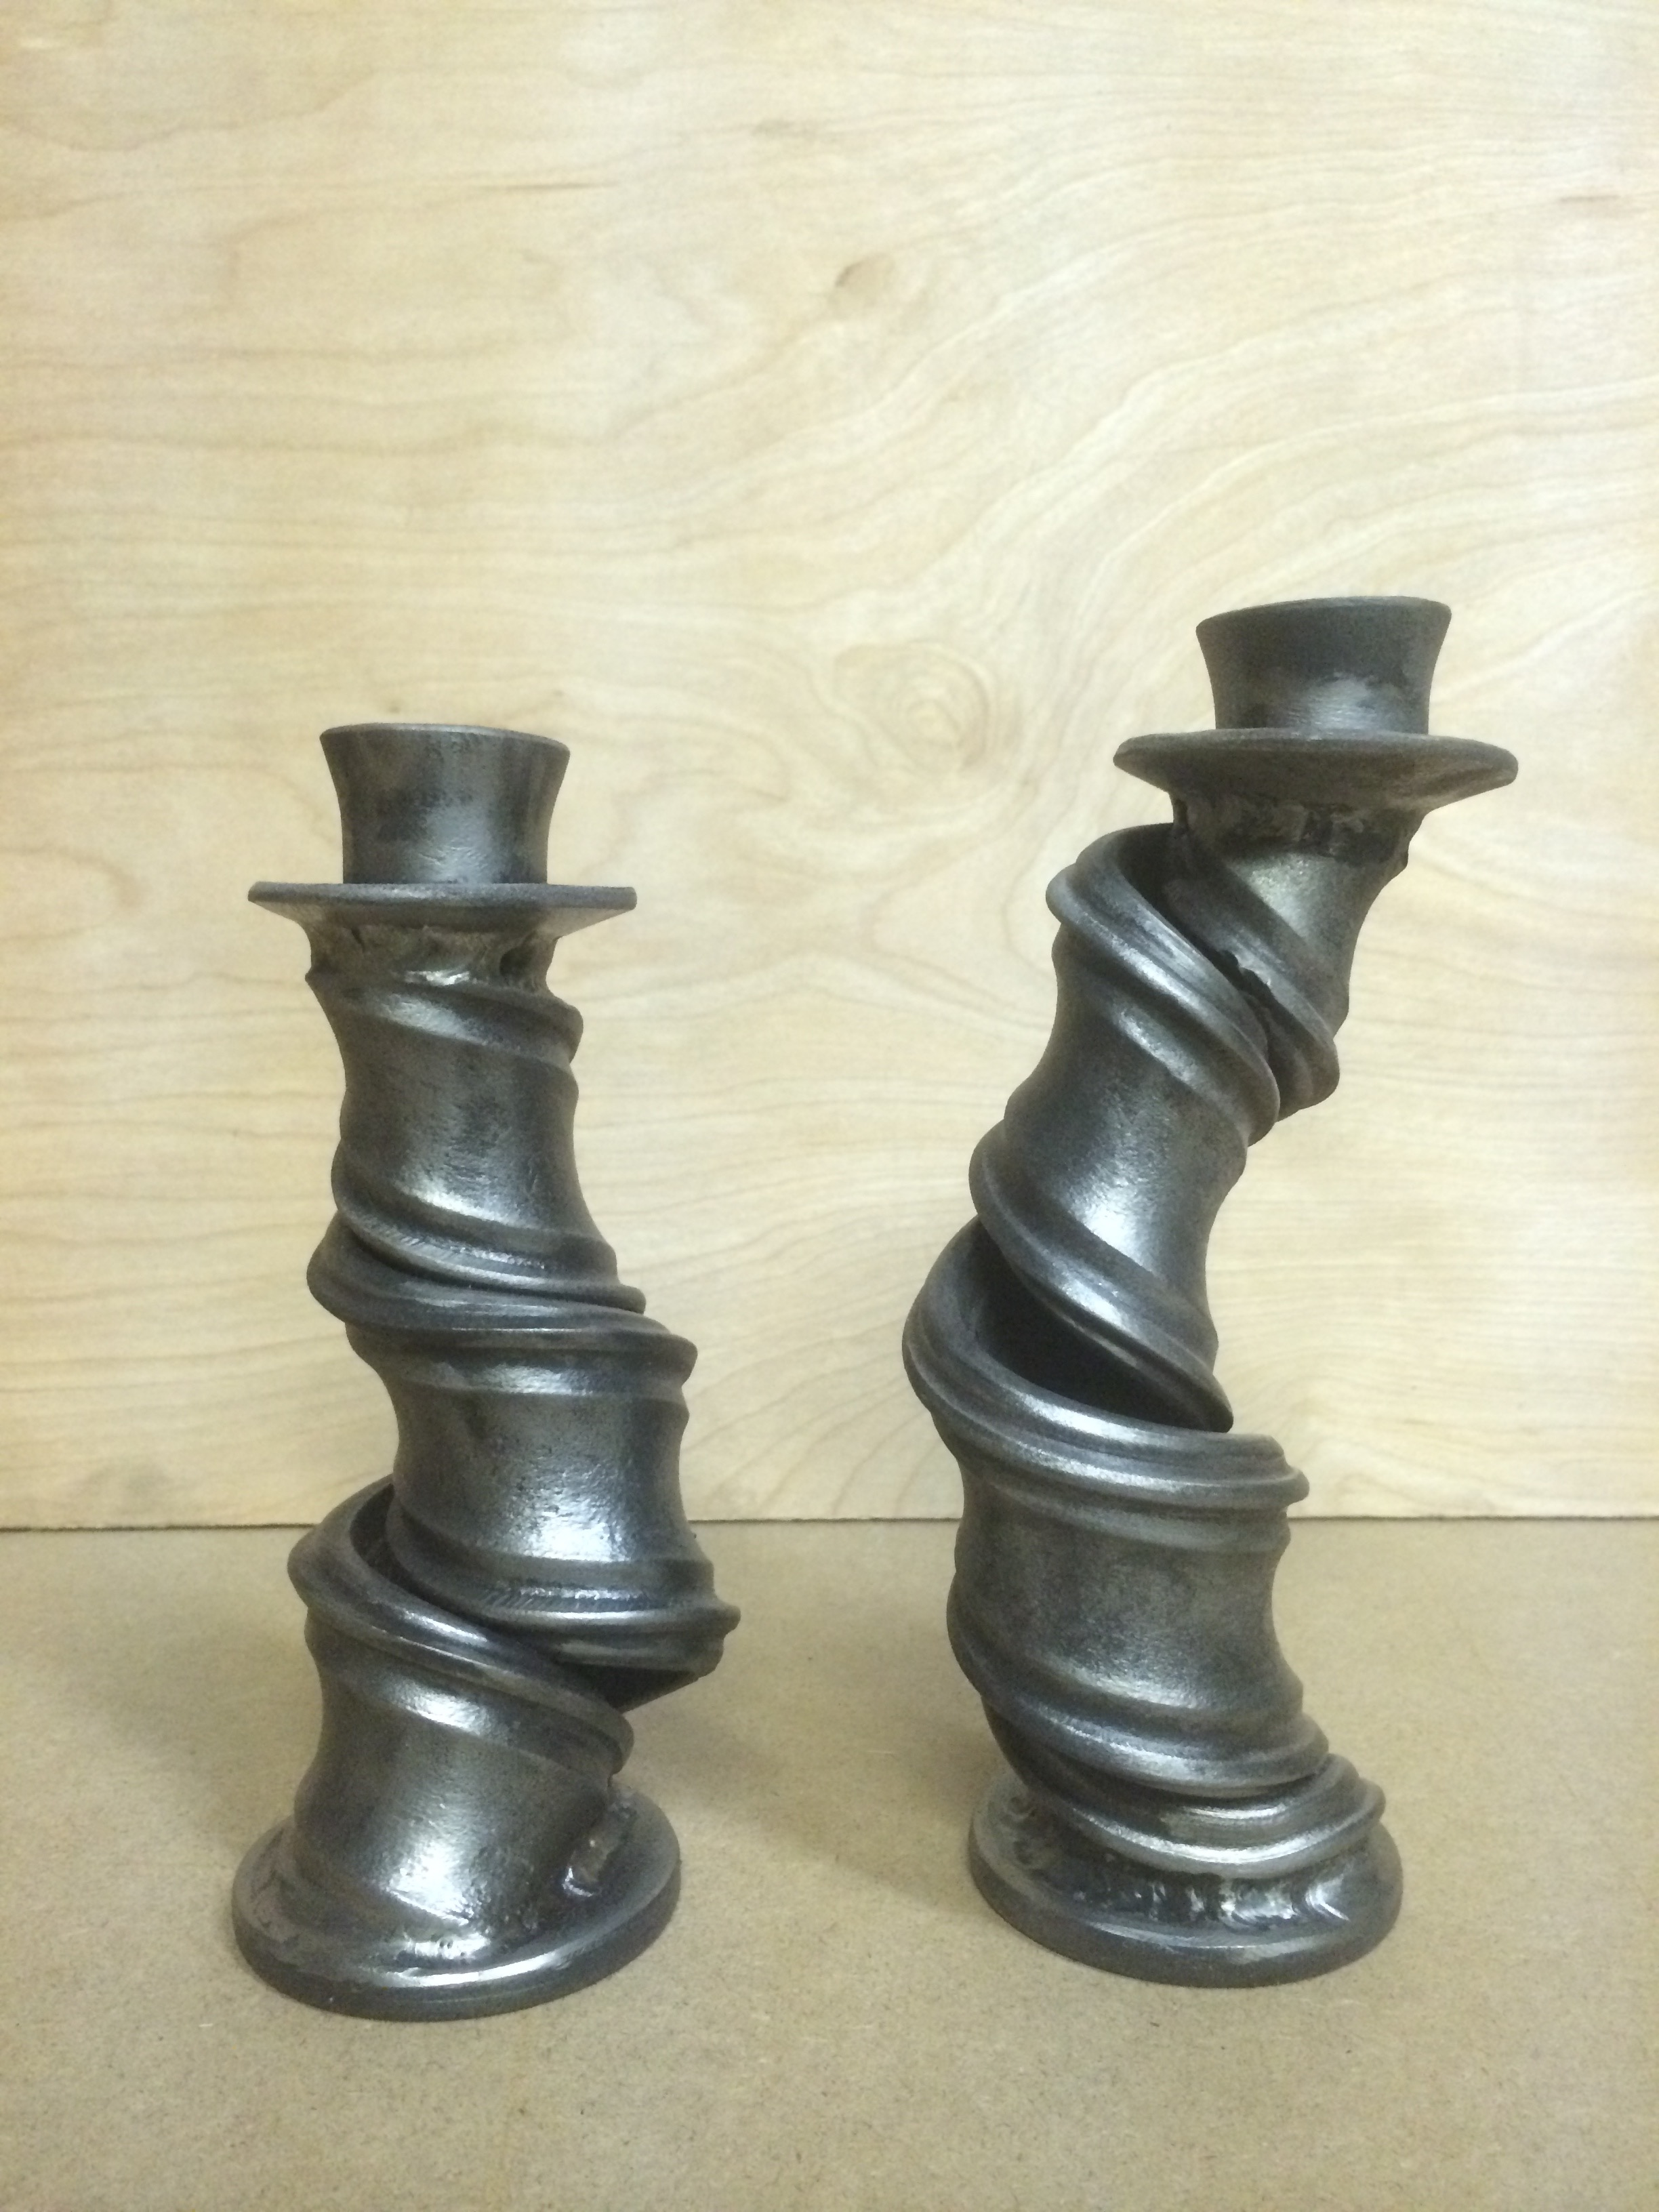 Forged Candle Holders